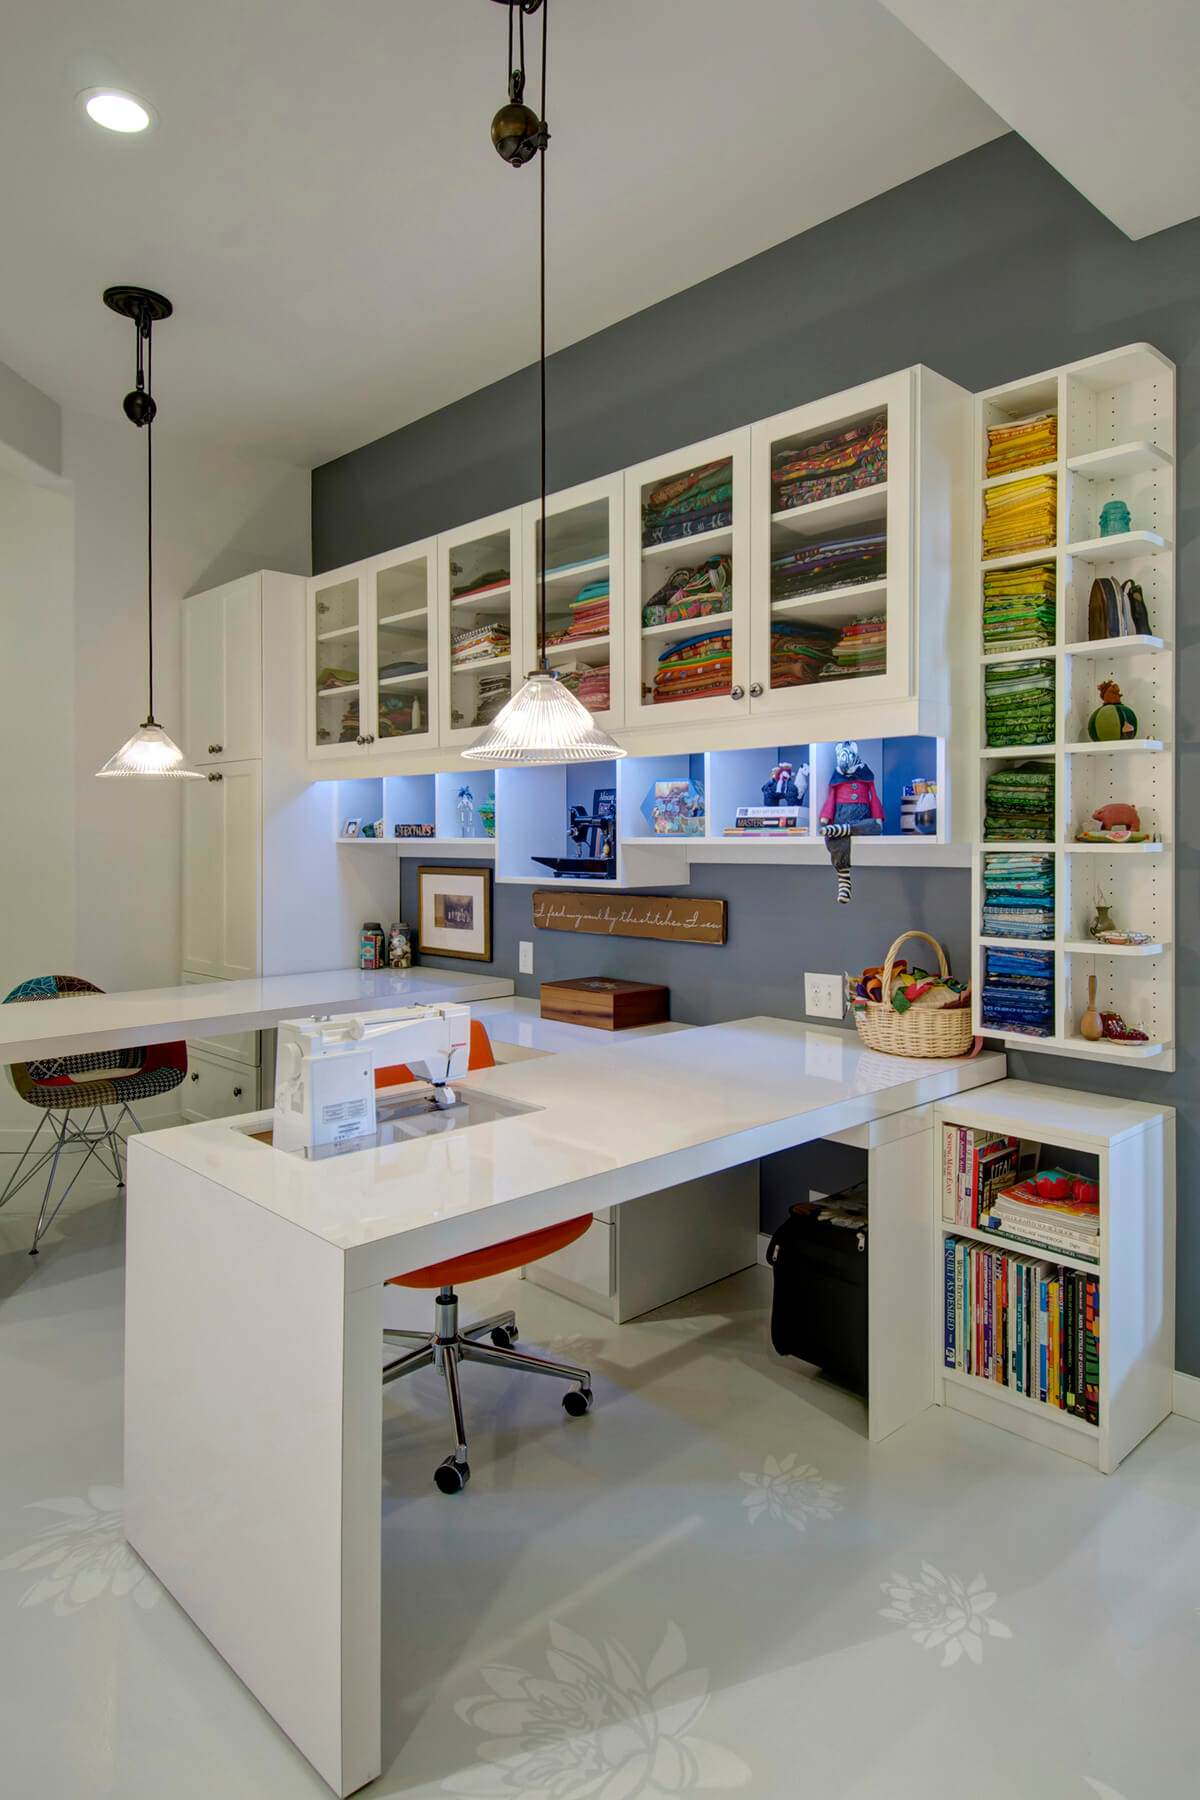 23 craft room design ideas creative rooms for 12 x 14 room designs